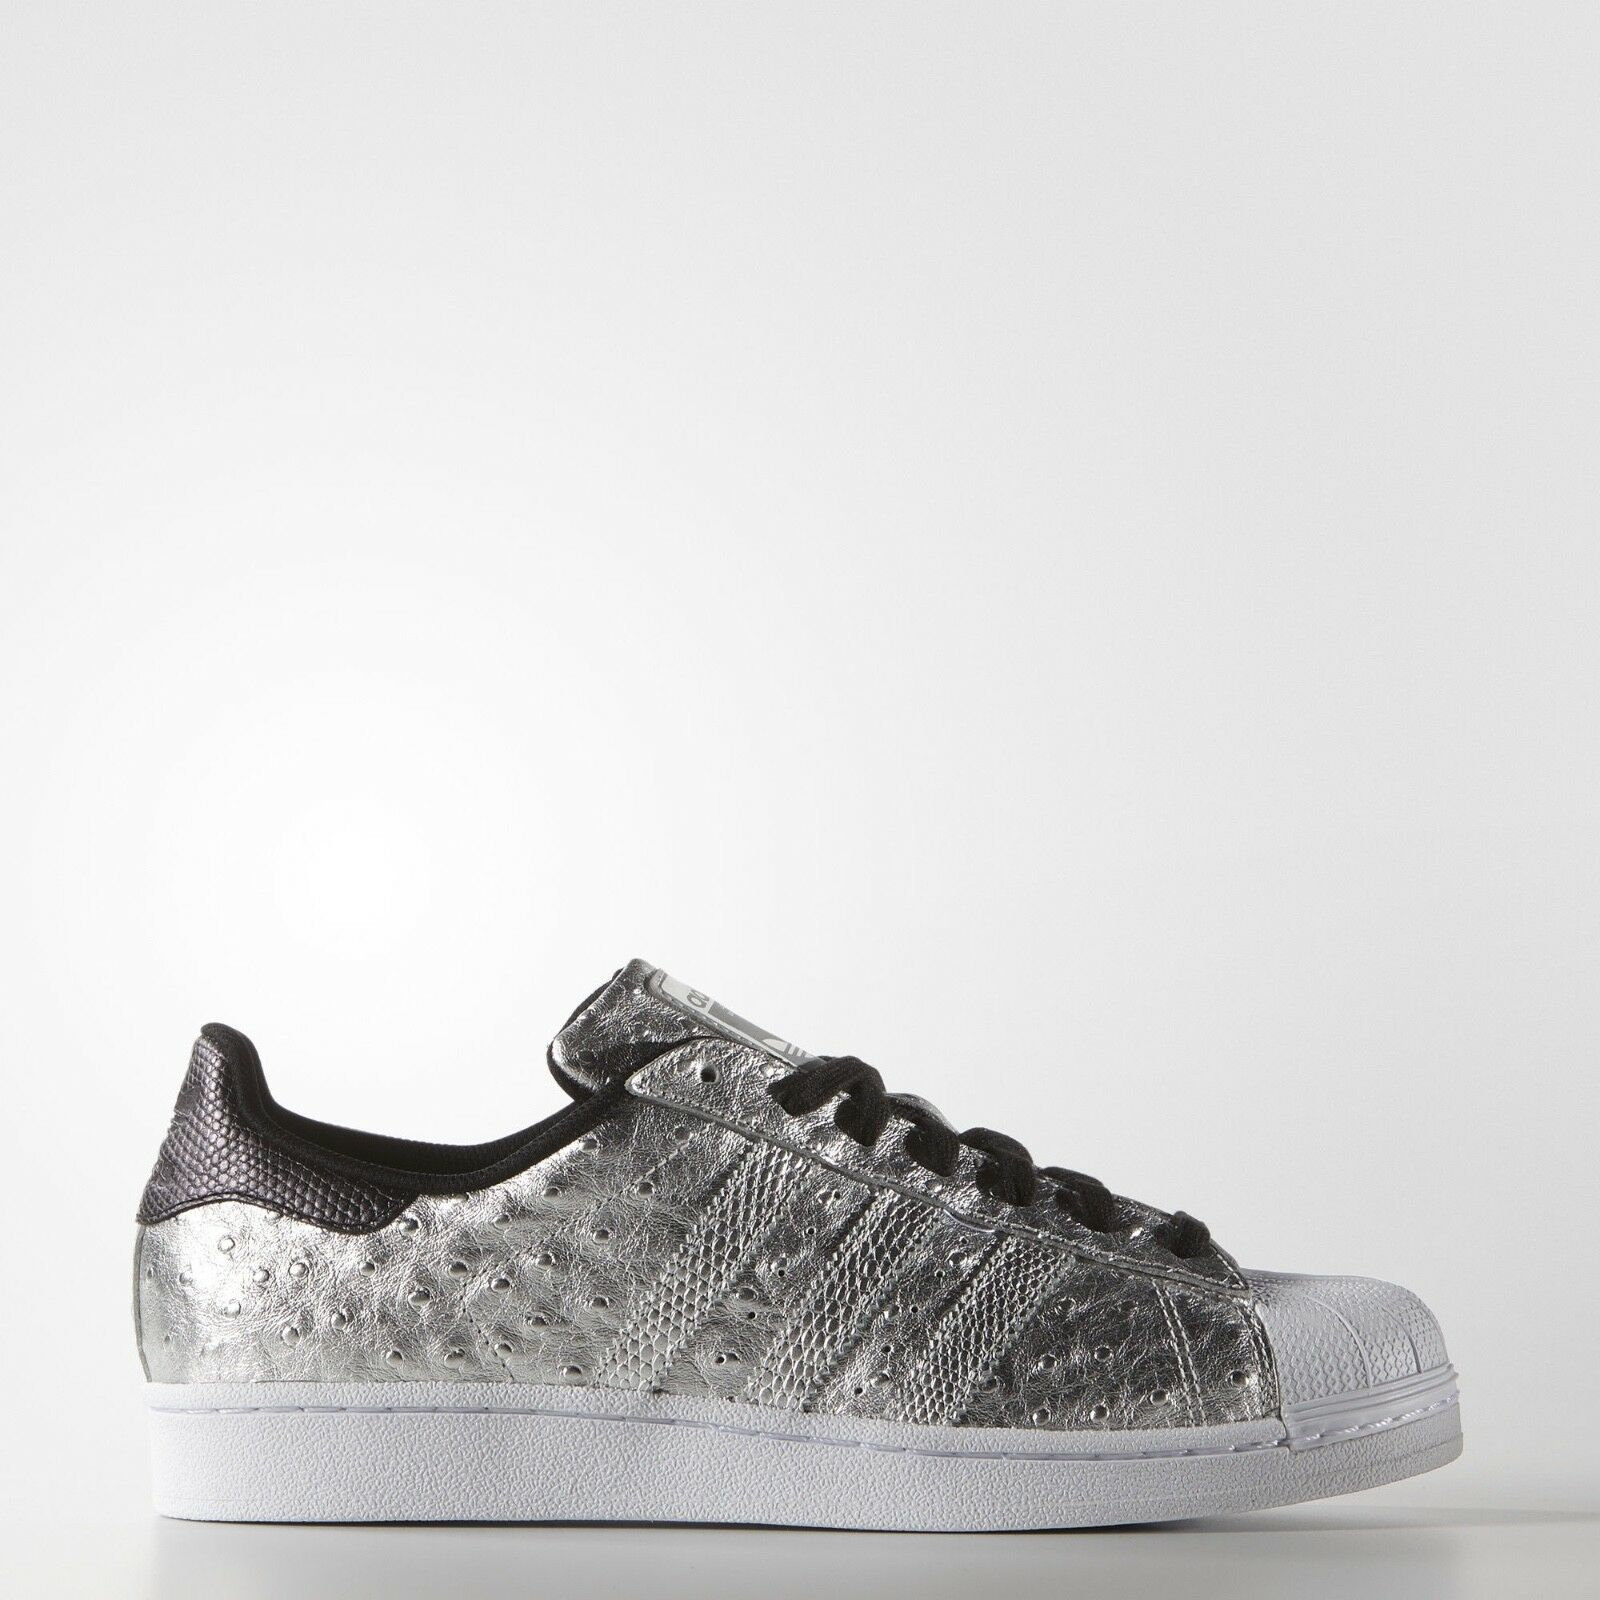 NEW Men's Adidas Superstar Shoes Color: Silver Size: 9